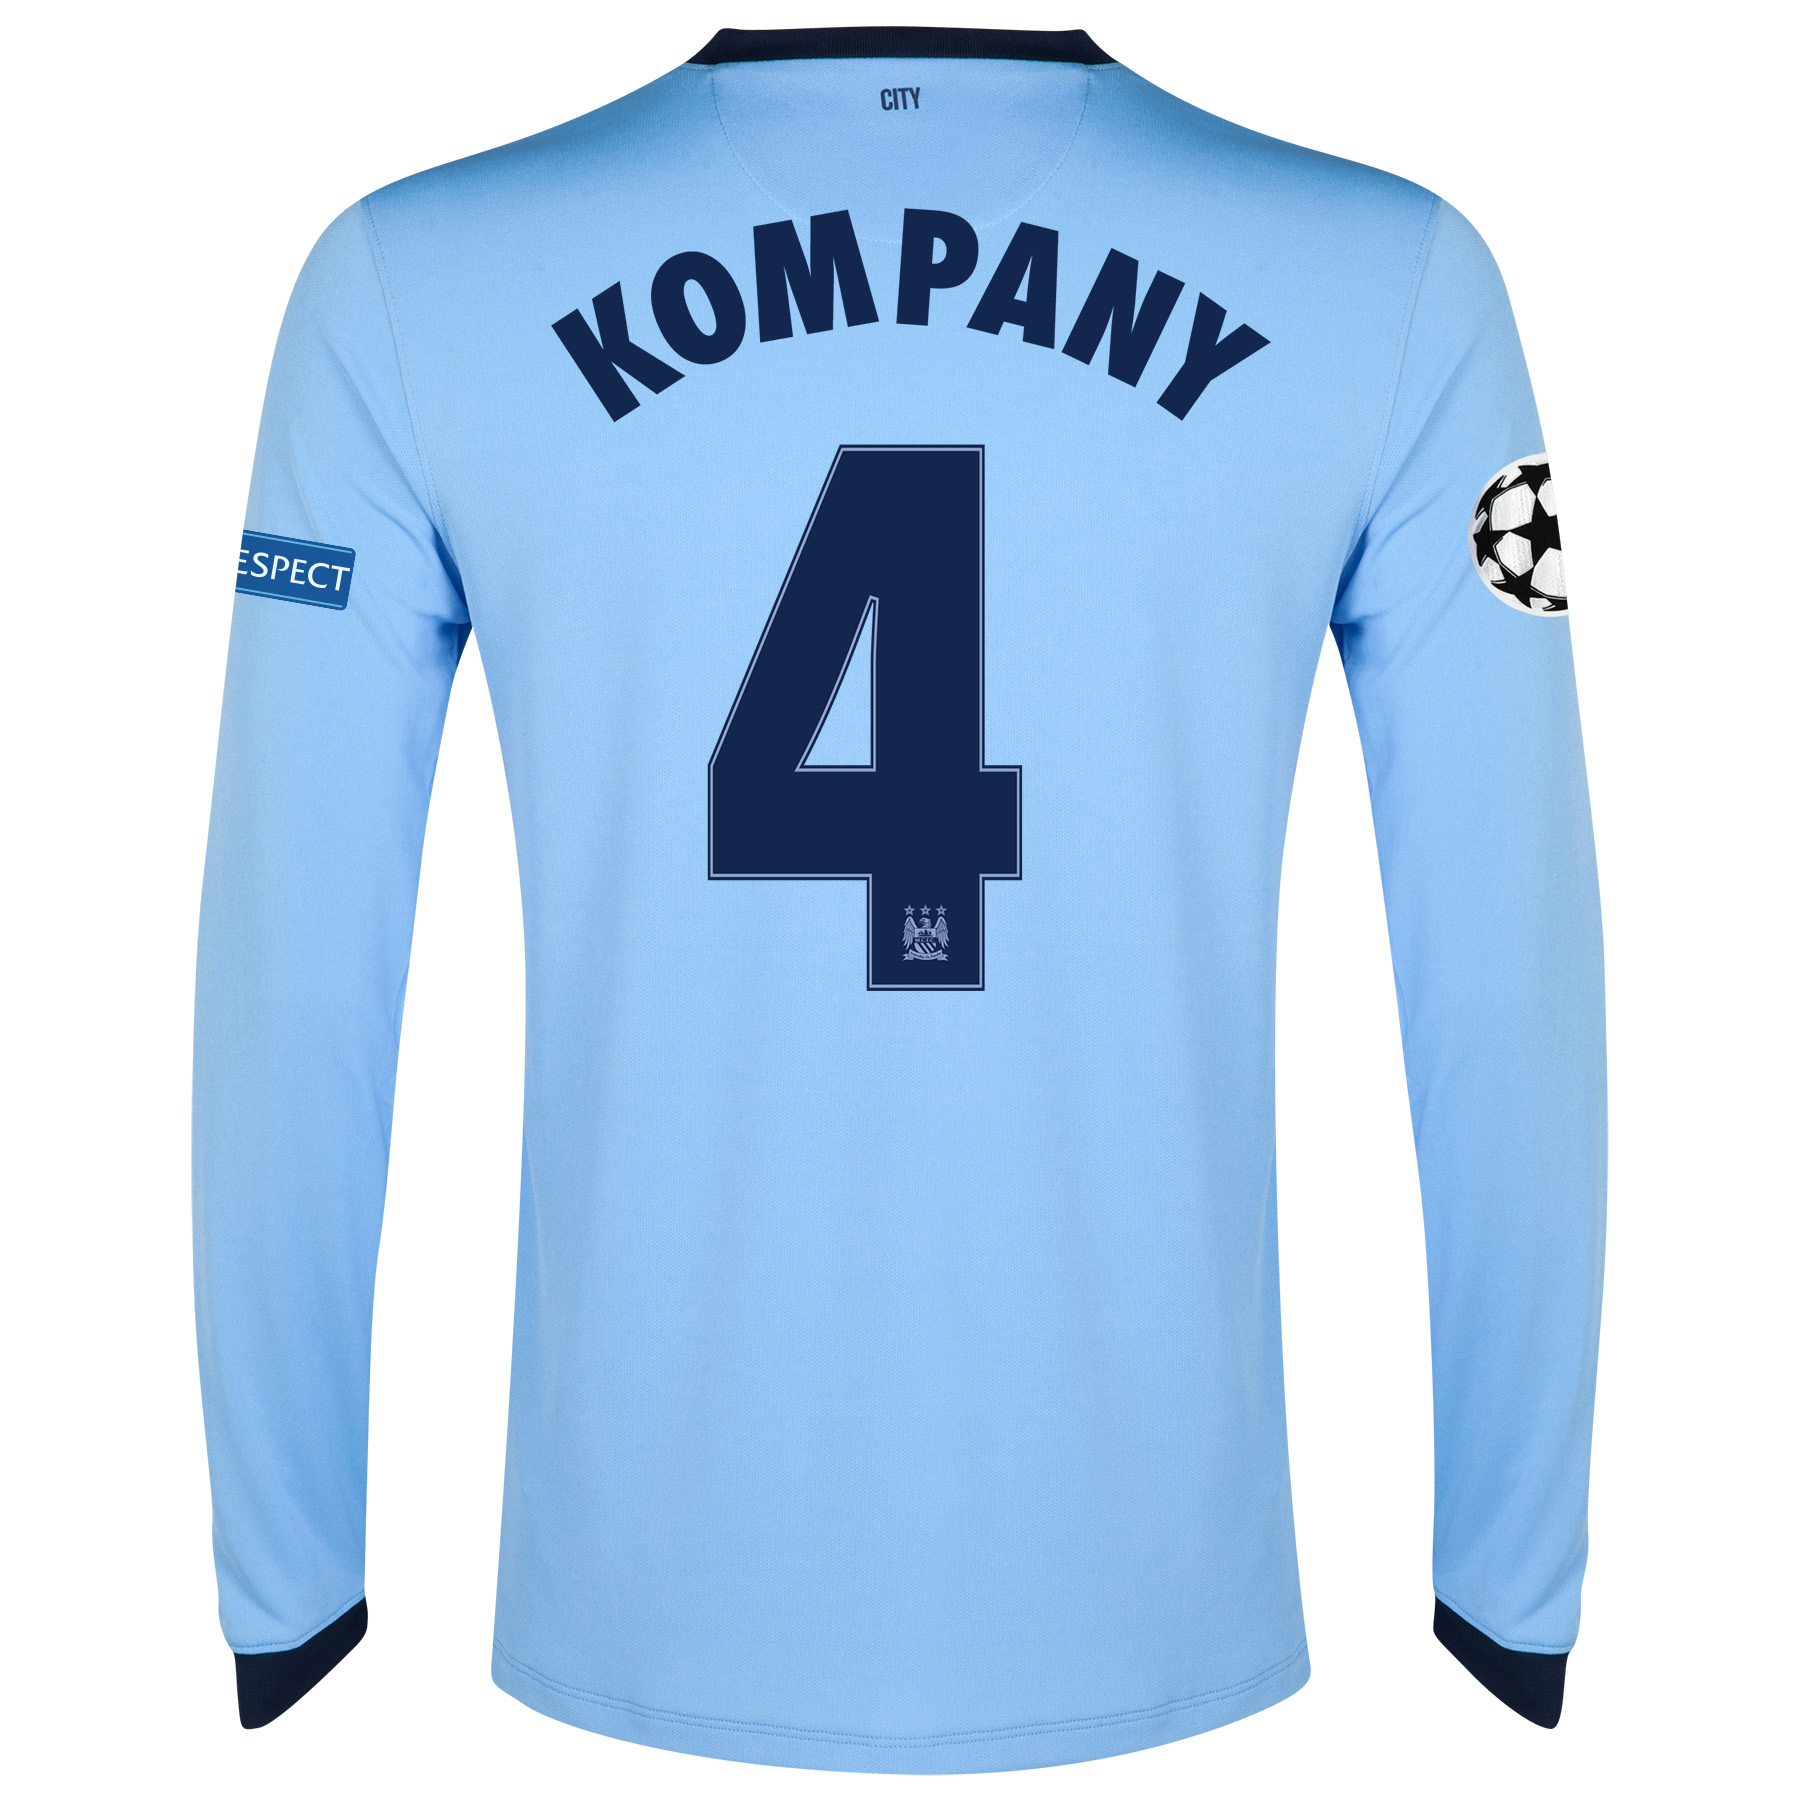 Manchester City UEFA Champions League Home Shirt 2014/15 - Long Sleeve - Kids Sky Blue with Kompany 4 printing